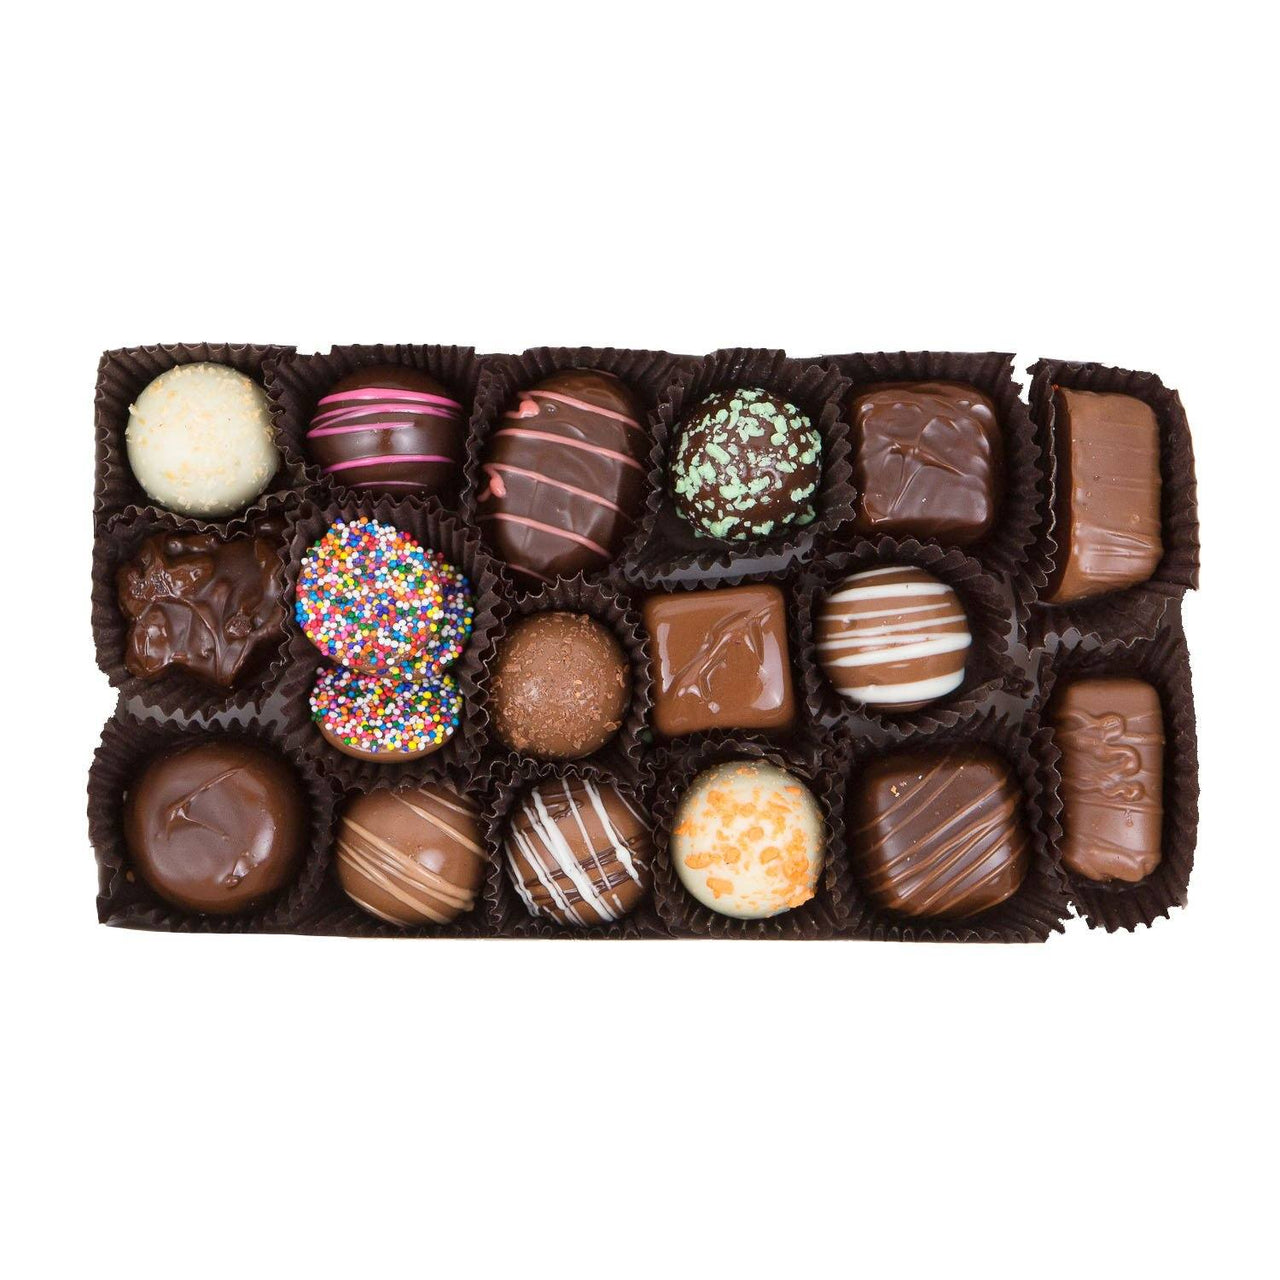 Gifts for Brother - Assorted Chocolate Gift Box - Jackie's Chocolate